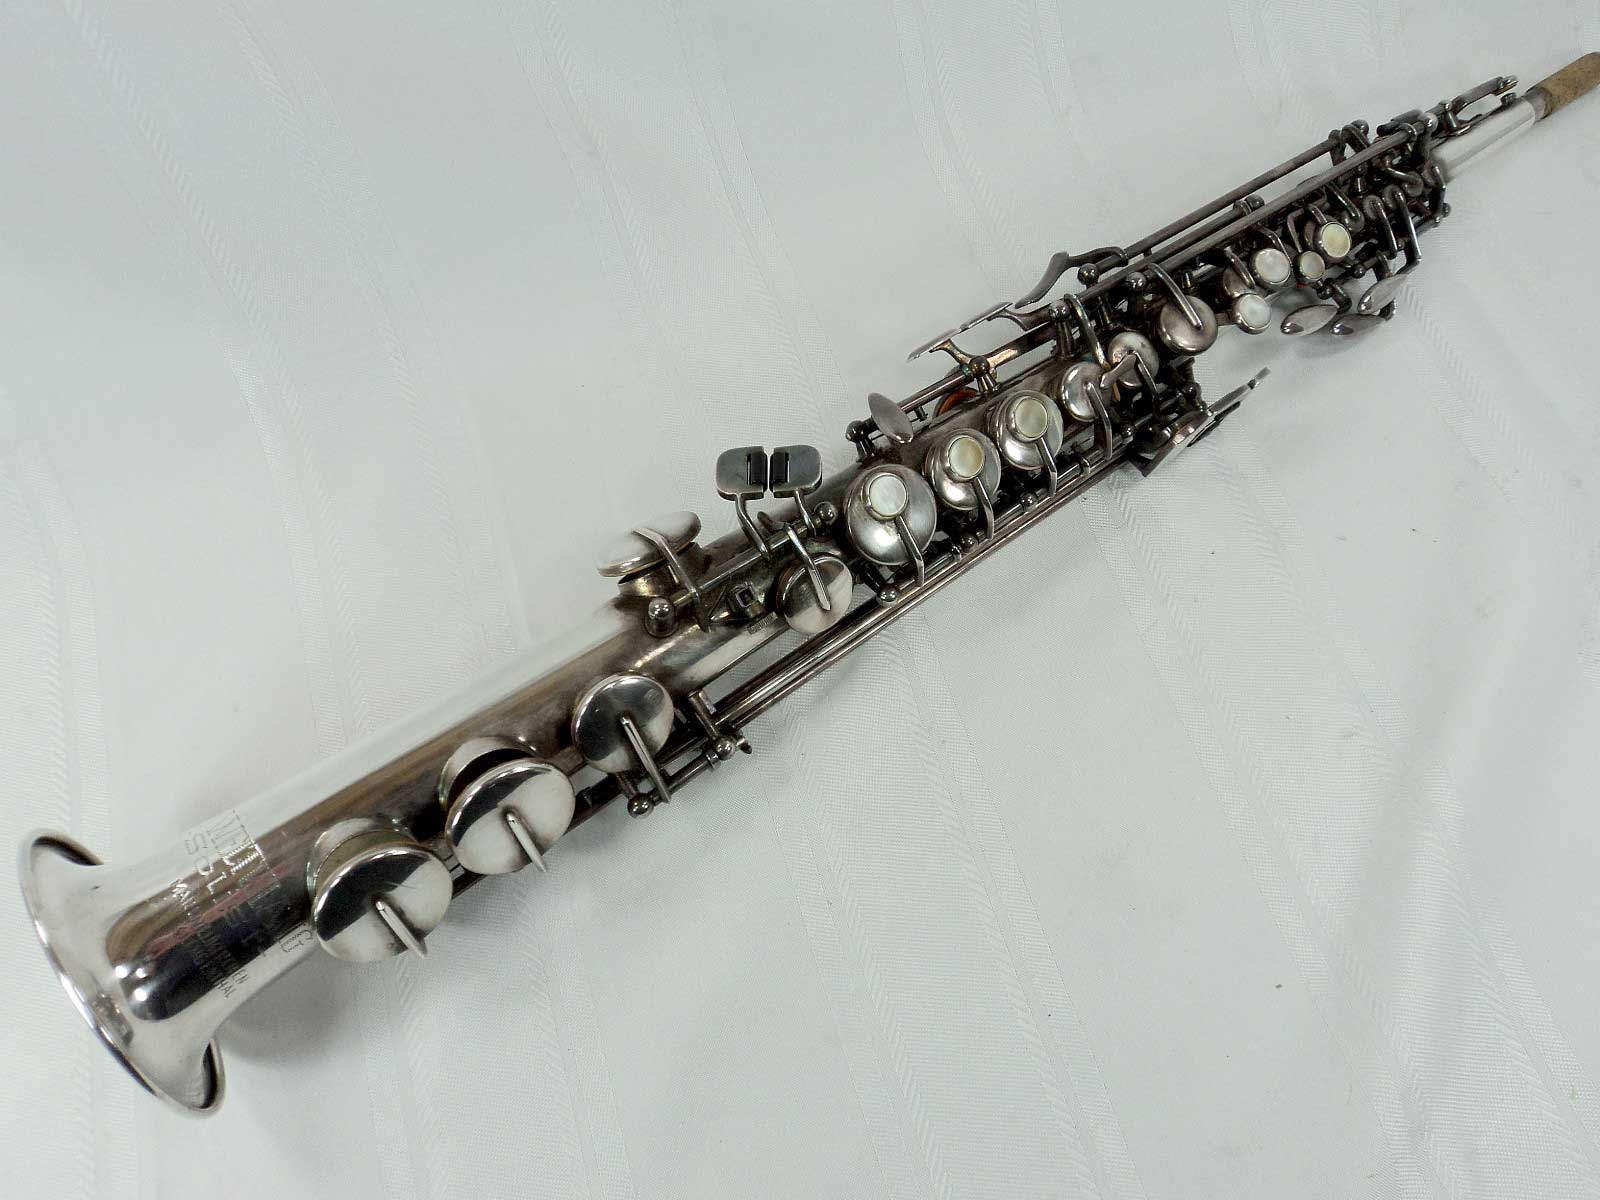 weltklang, soprano saxophone, silver plated, vintage, German Sax, DDR